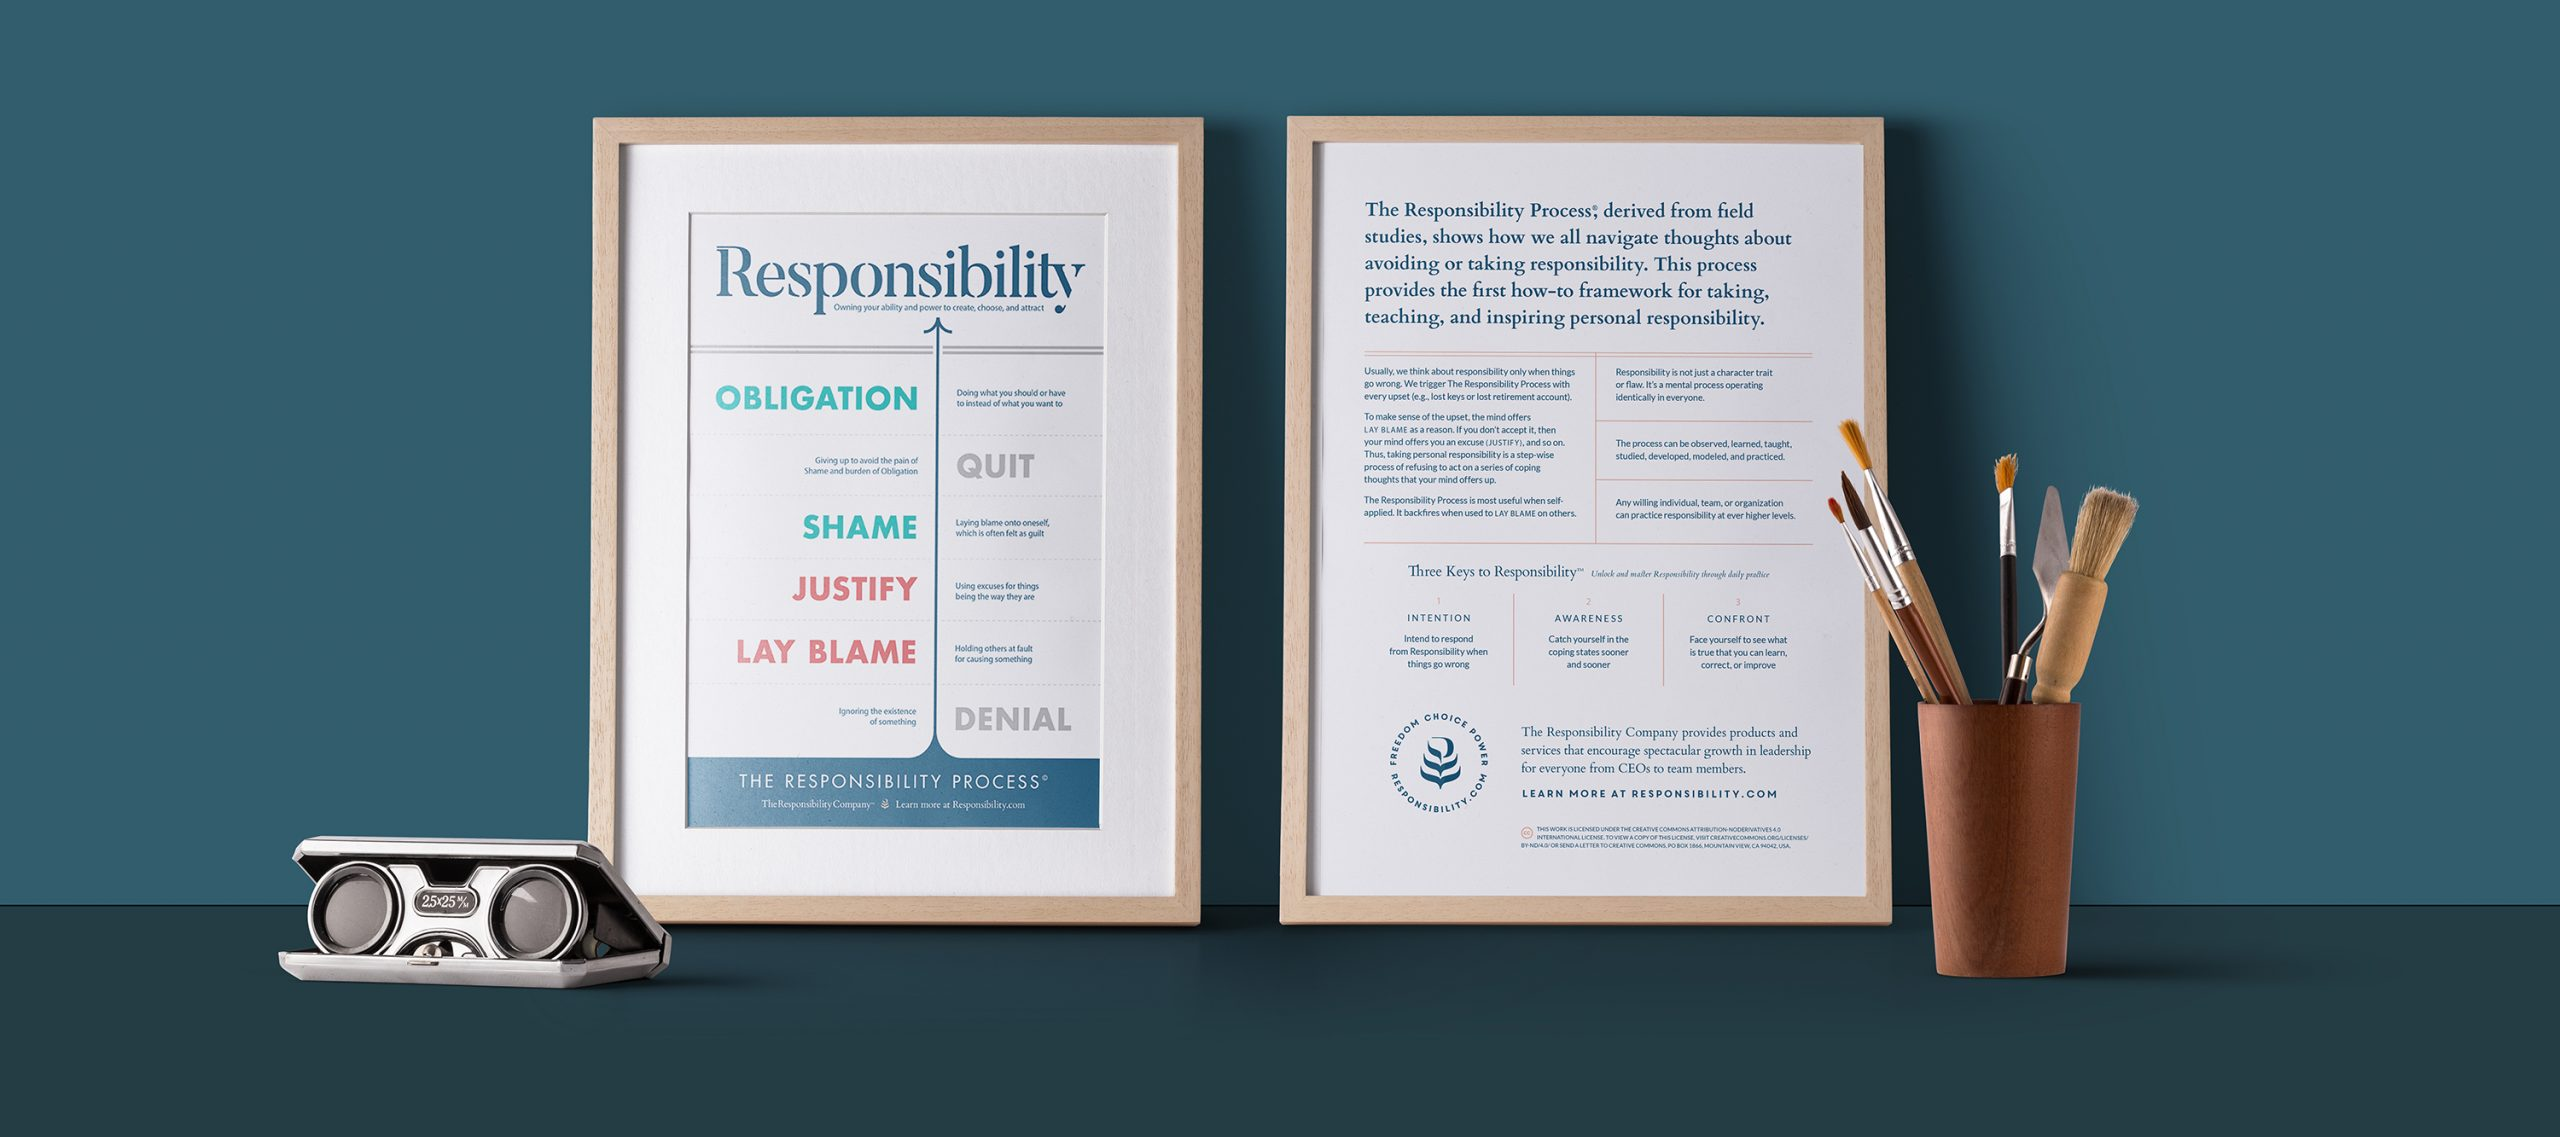 Responsibility Process Poster